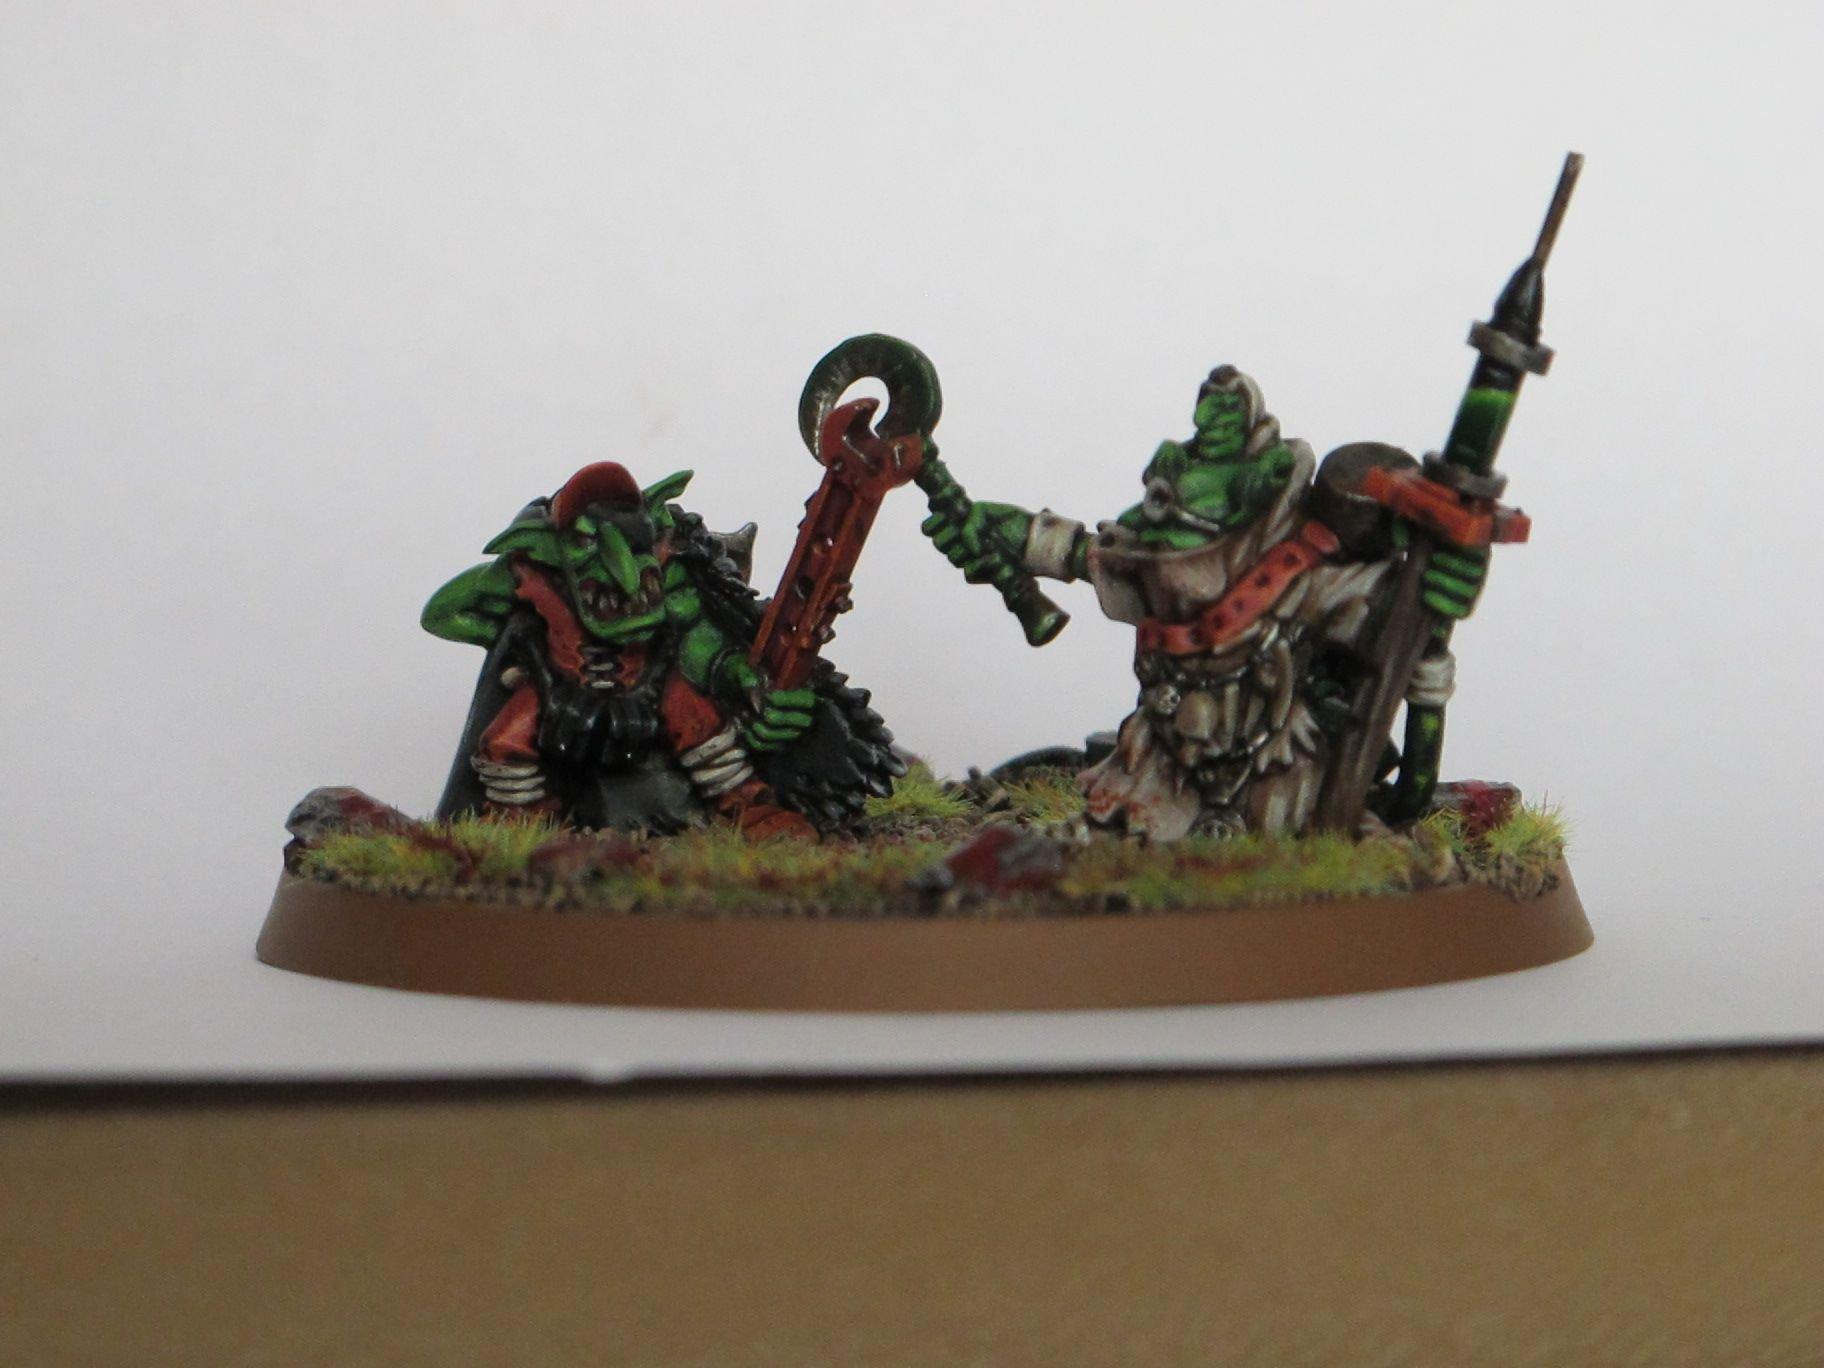 Dakka Painting Challenge, Duel, Grots, Orks, Warhammer 40,000, Welcome To Thunderdome, Work In Progress